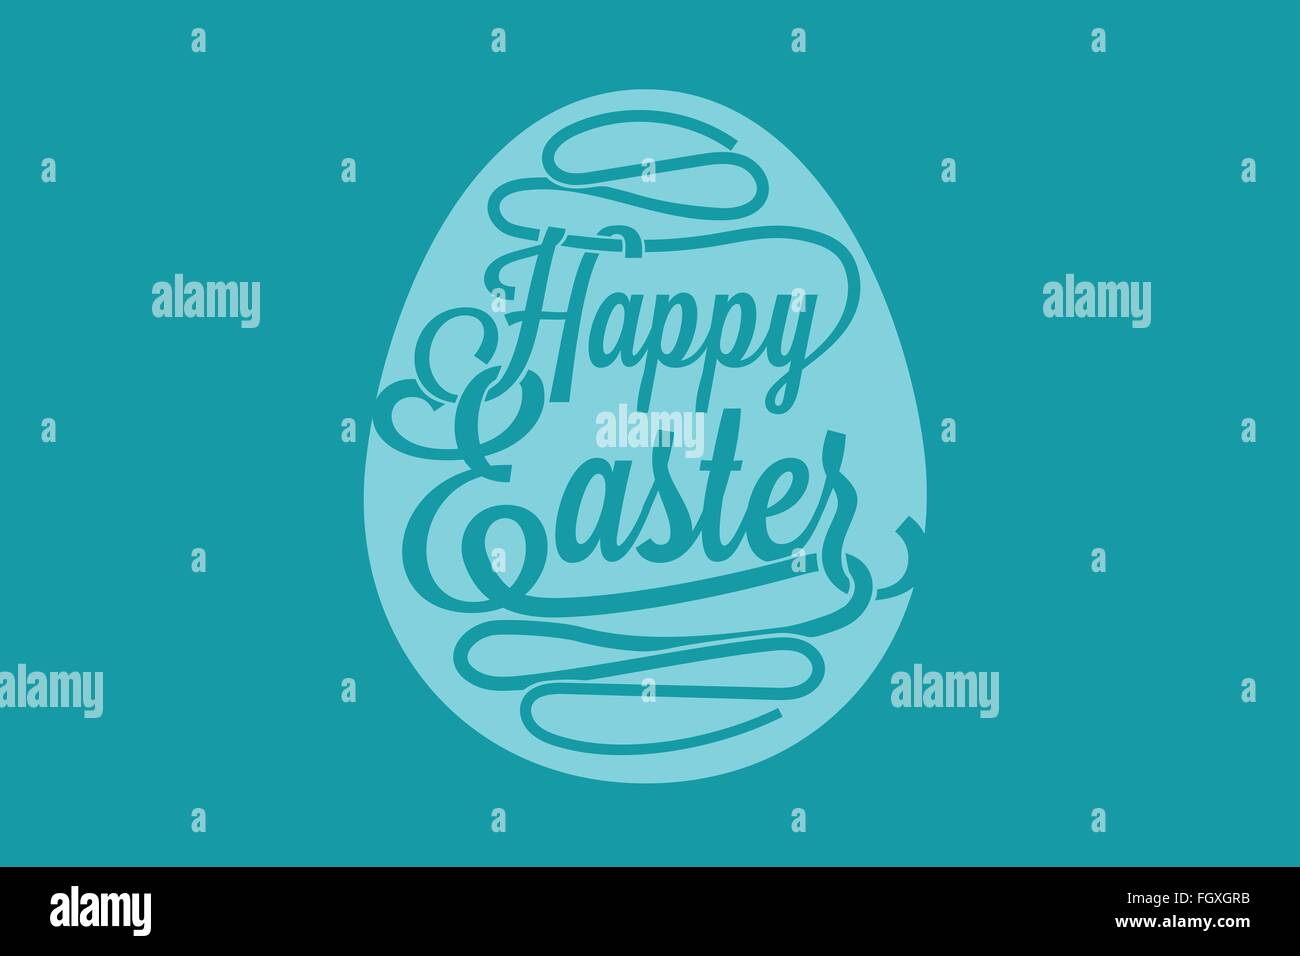 Happy easter greeting card with calligraphic words and egg stock happy easter greeting card with calligraphic words and egg m4hsunfo